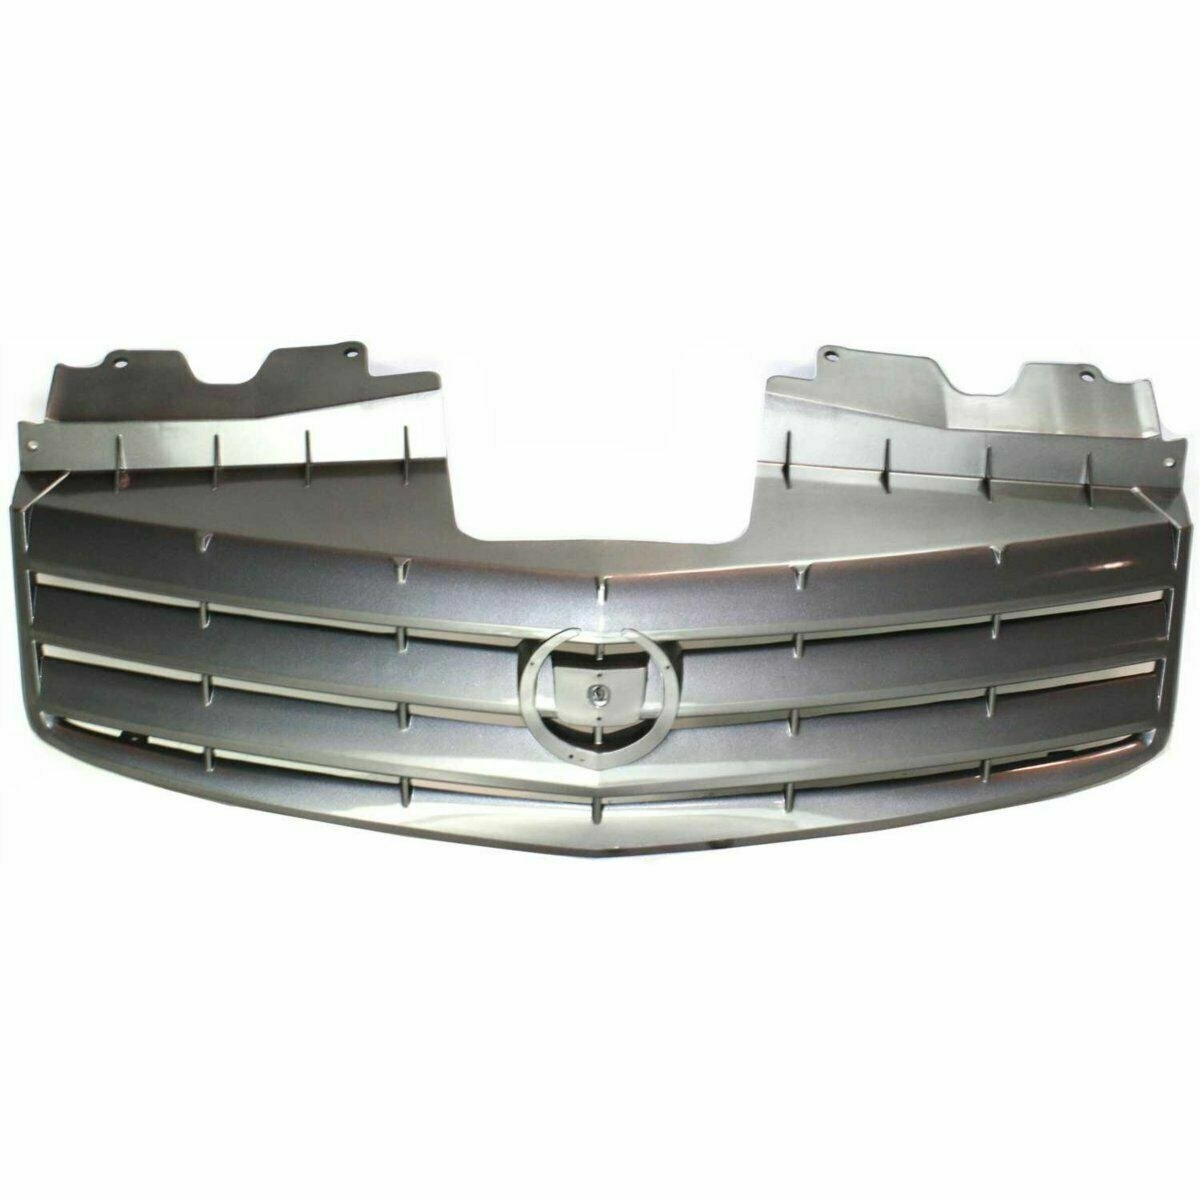 New Primed Grille Assembly For 03-07 Cadillac CTS